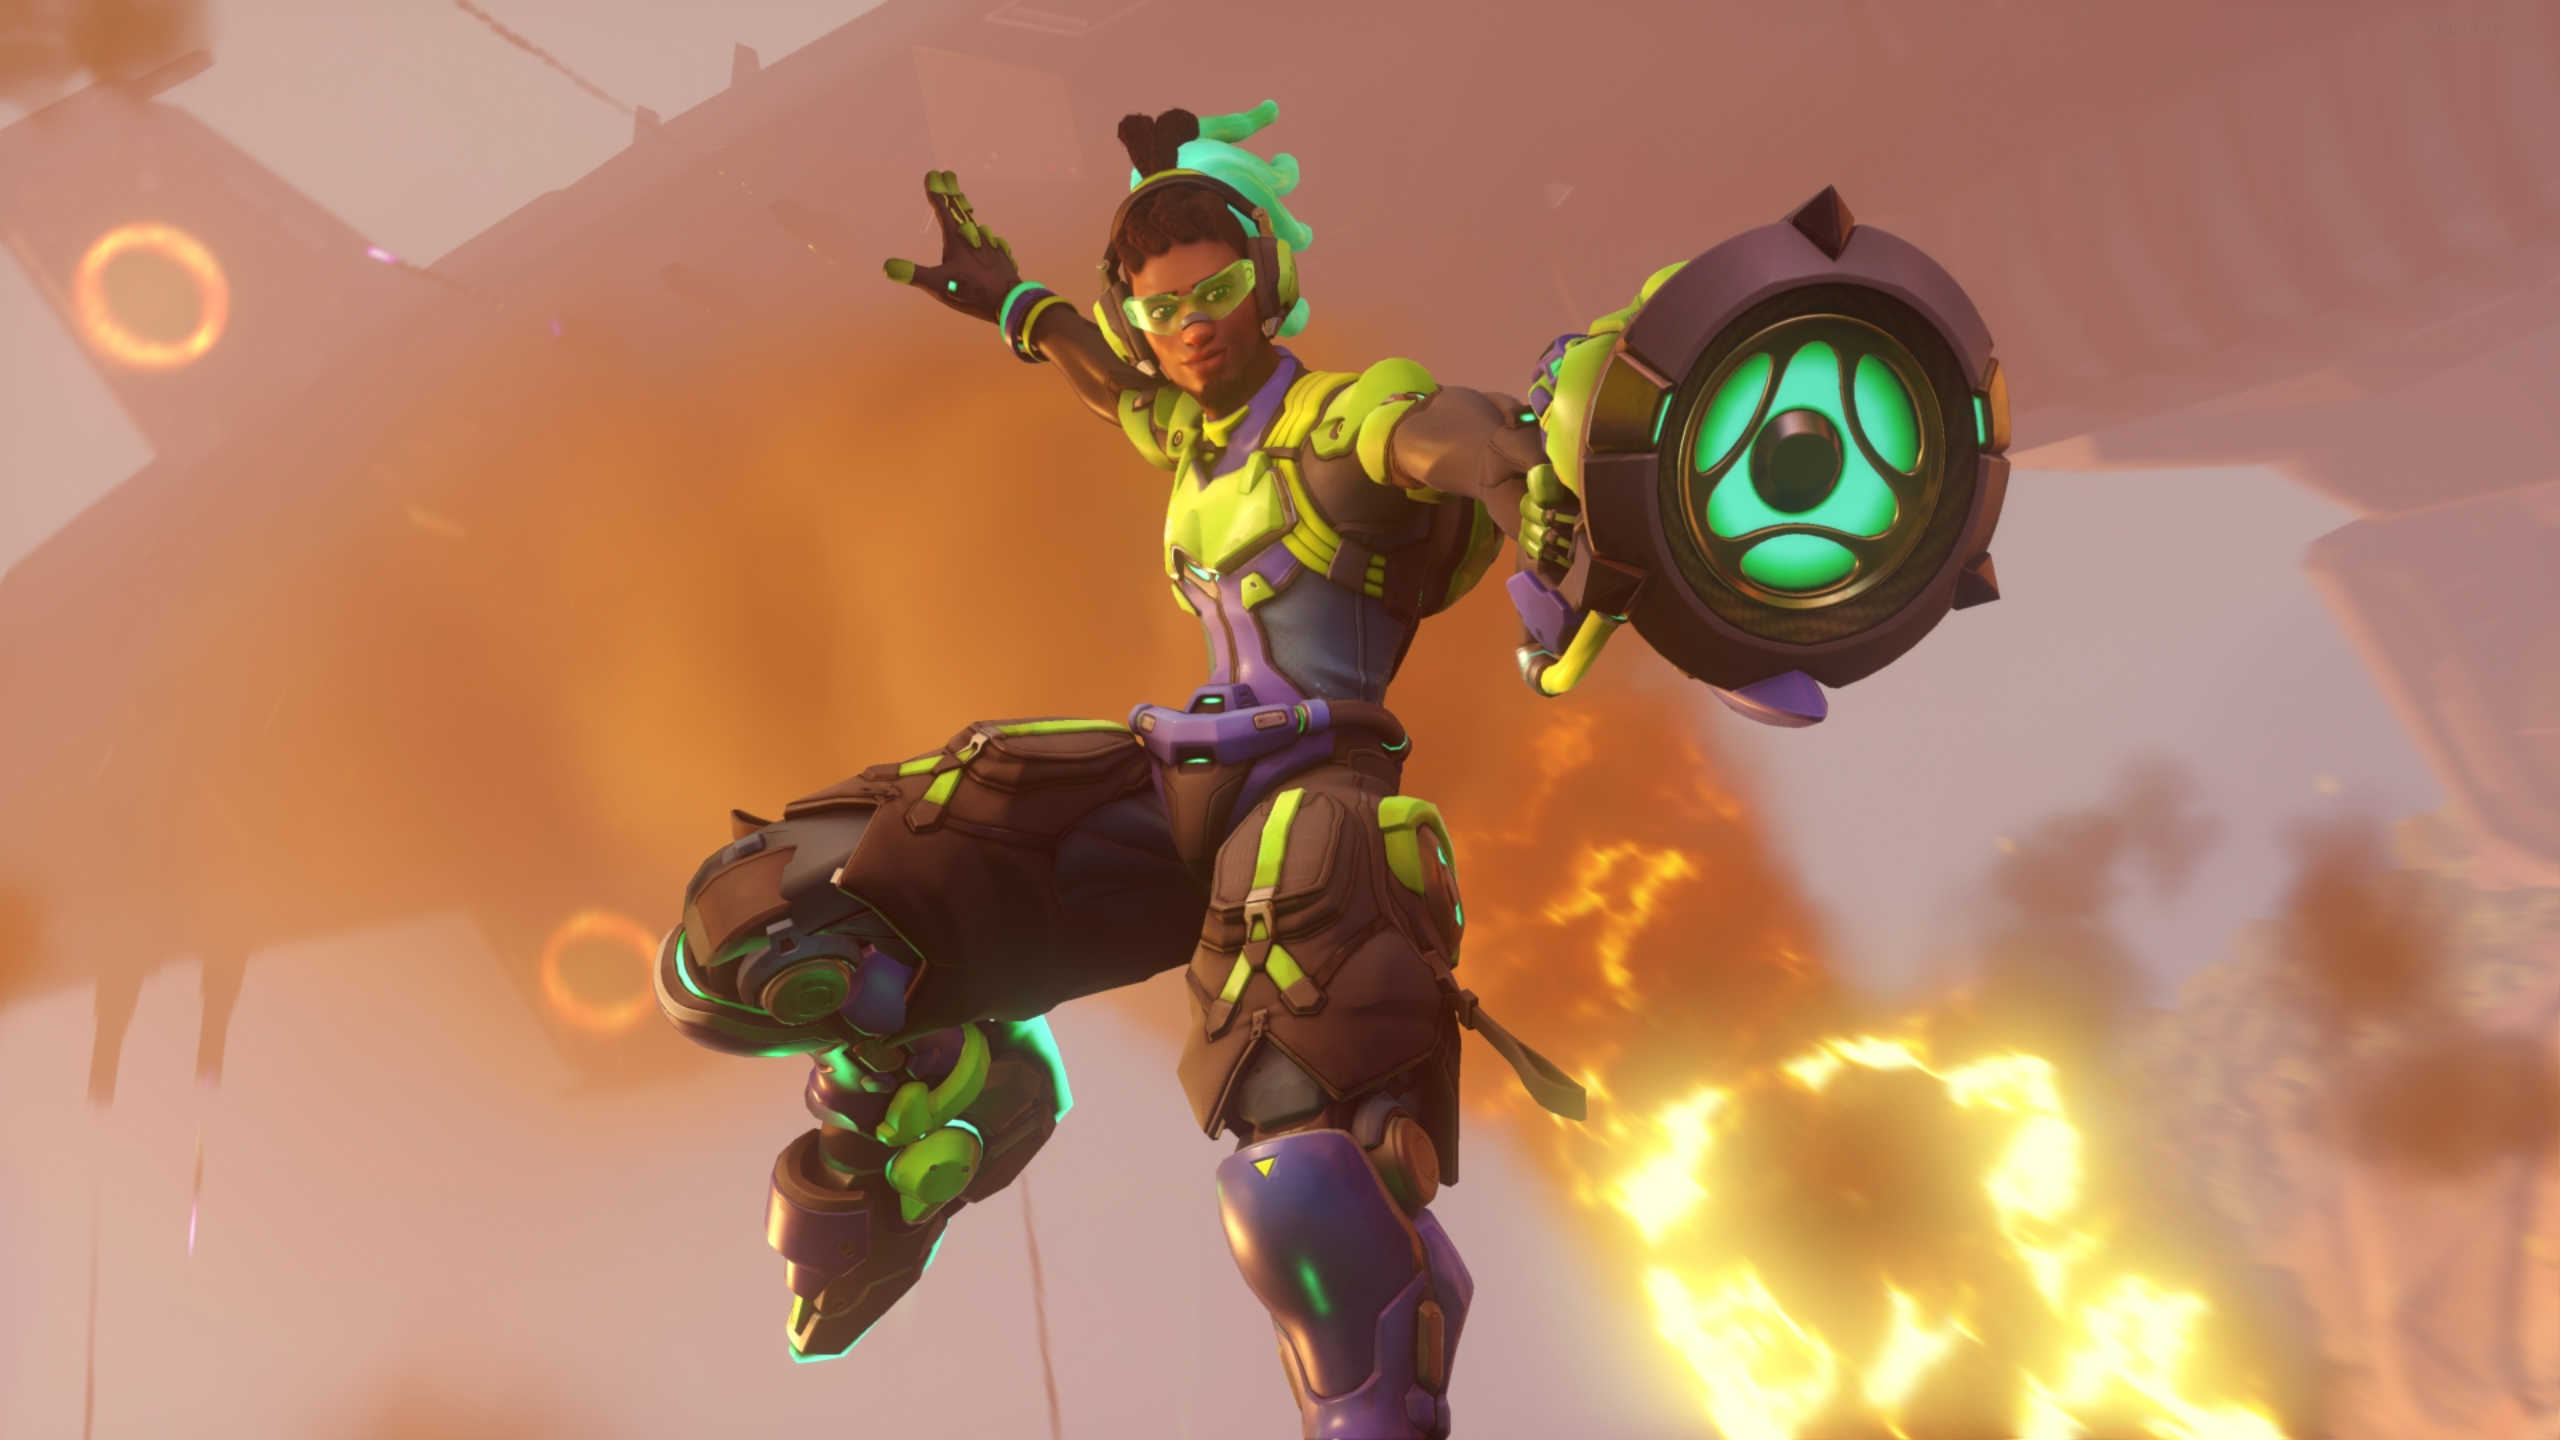 Awesome Overwatch Wallpaper – Album Halloween Skins Are Here 4th